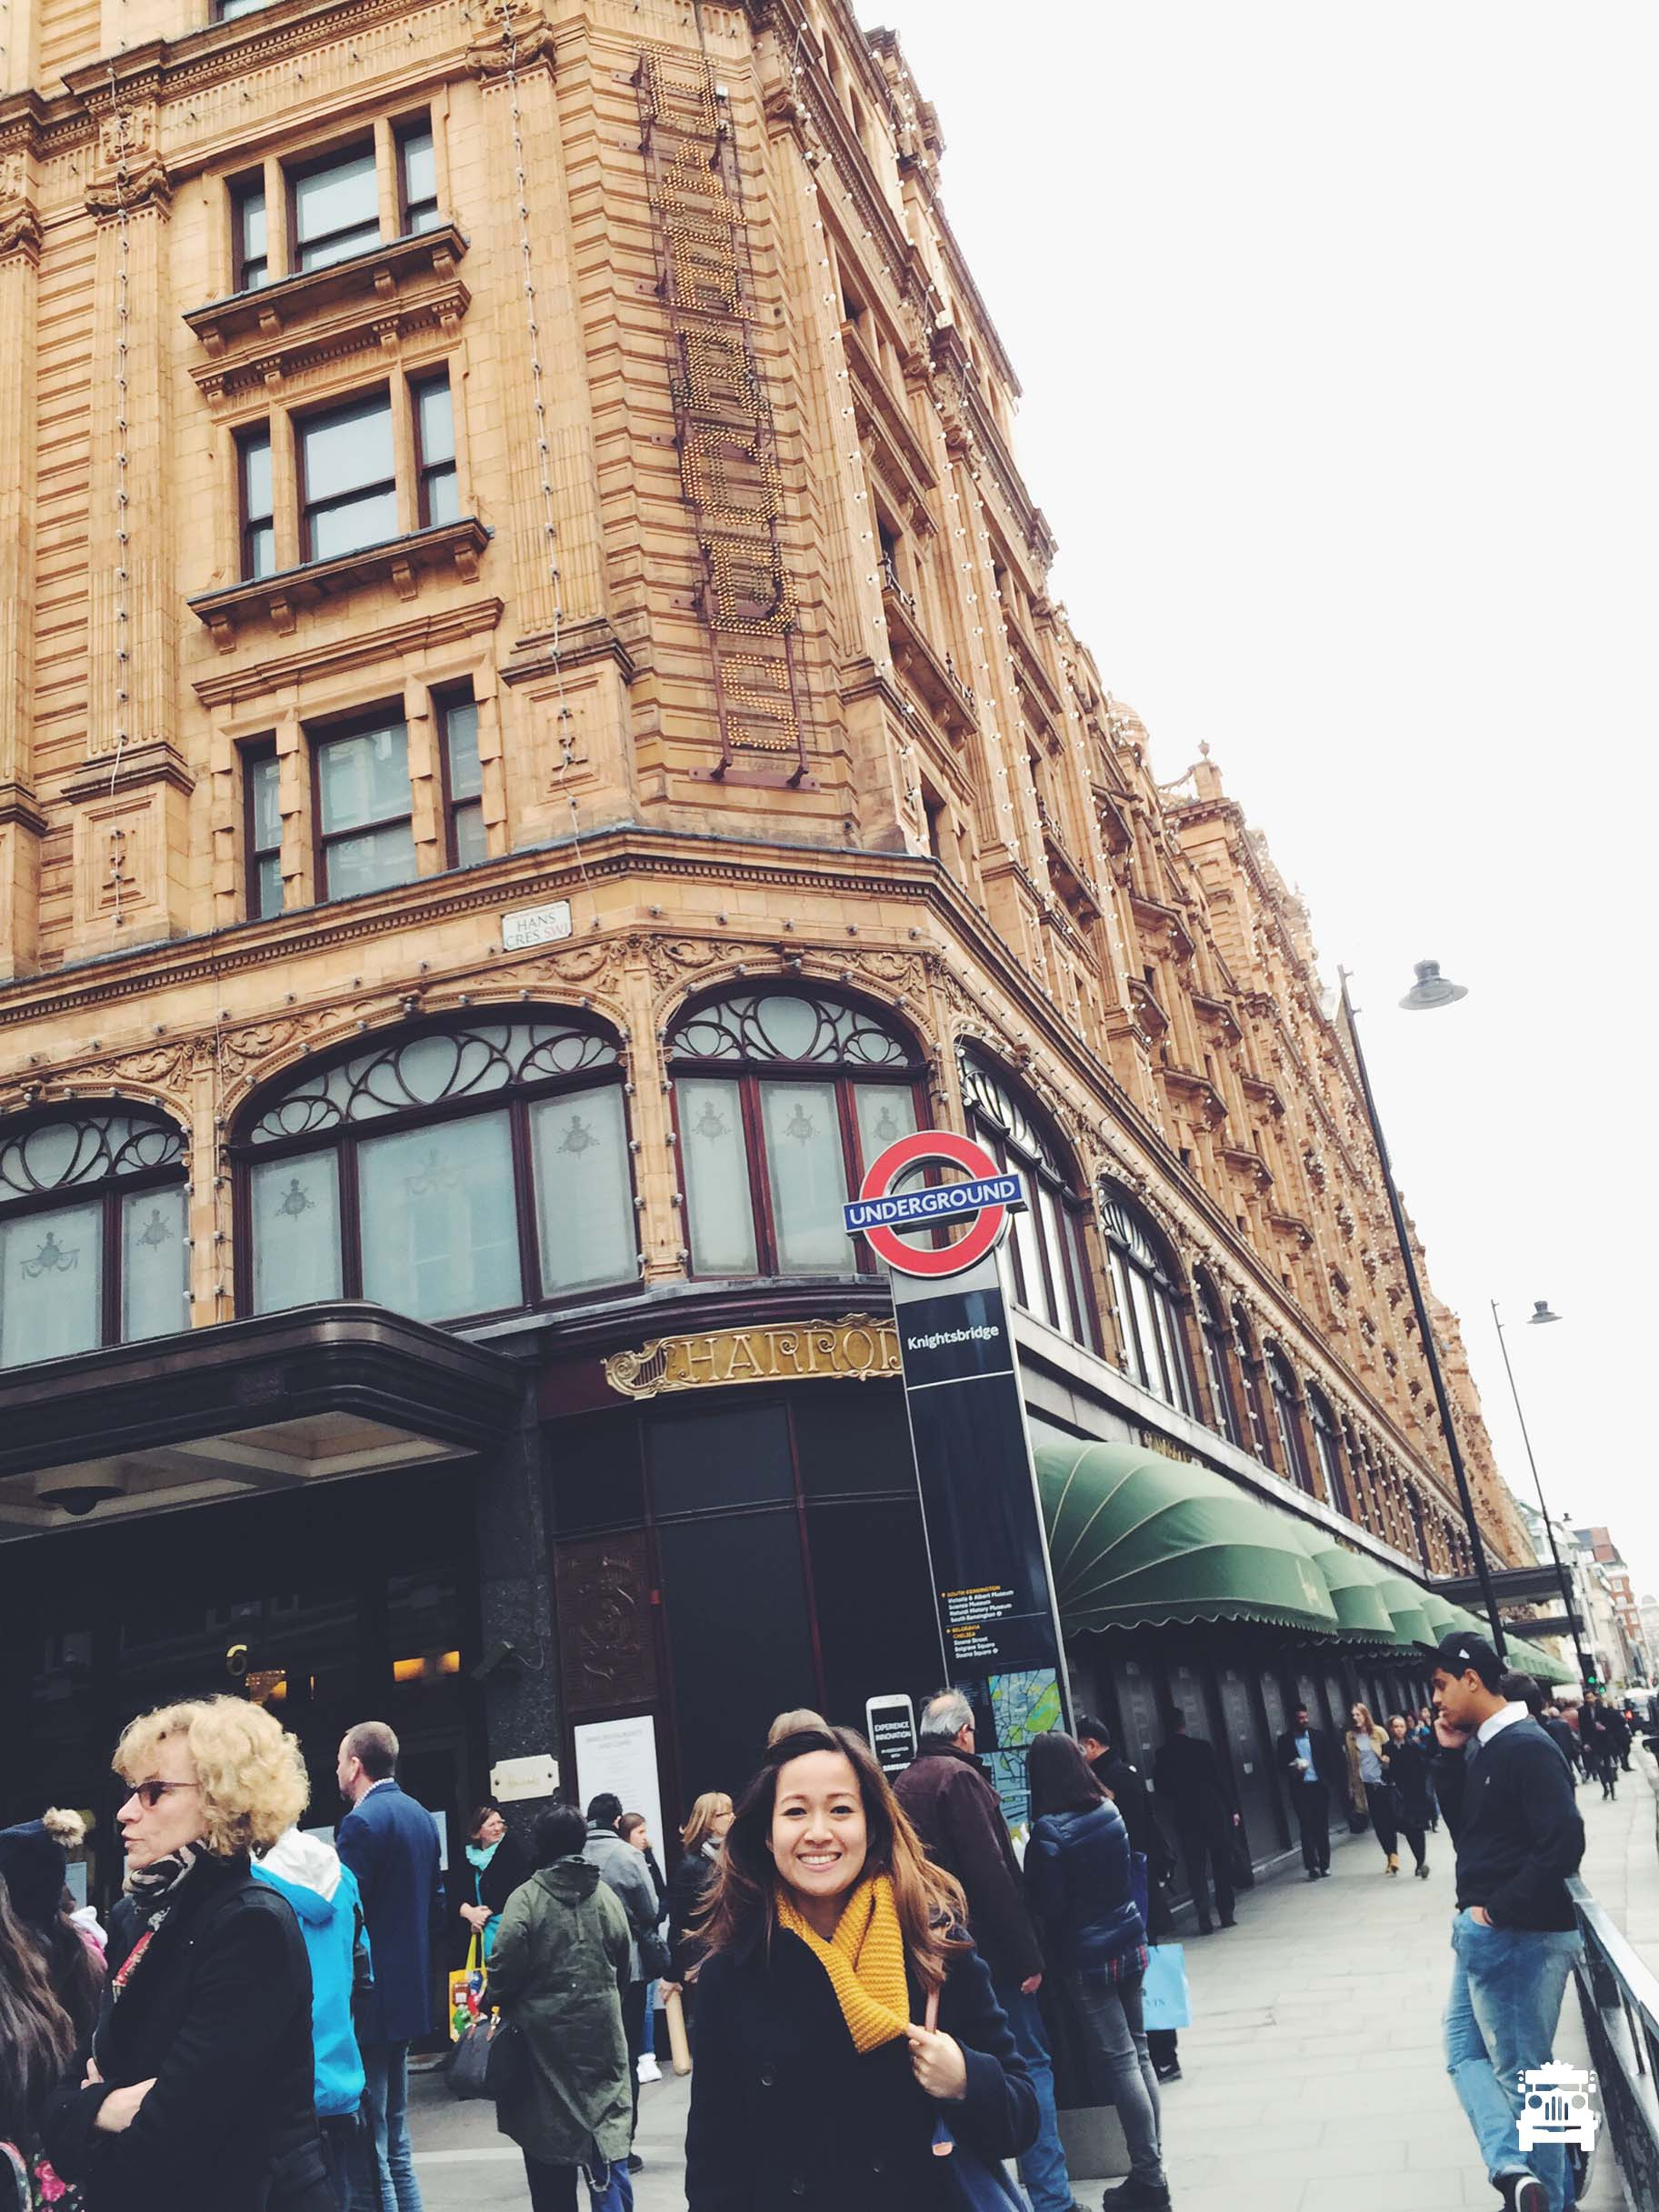 Walked in and walked out immediately at Harrods lol